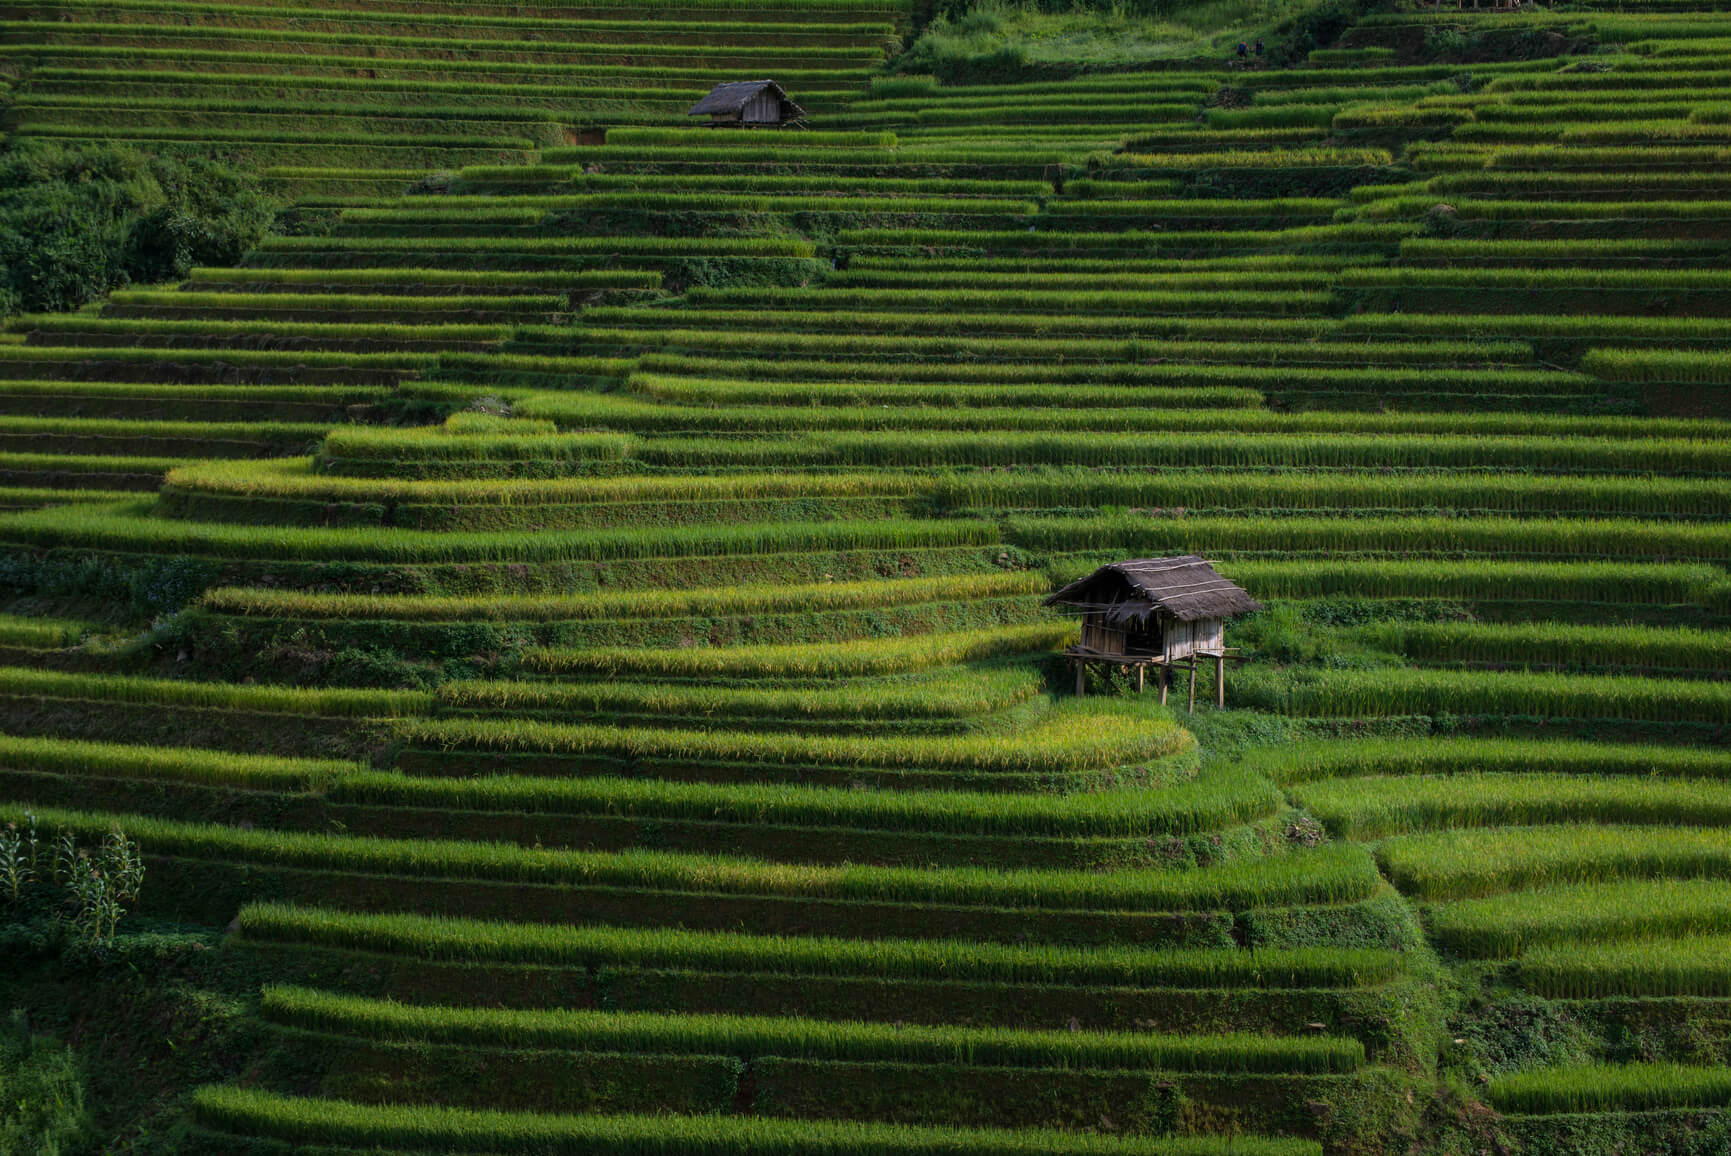 Warsaw, Poland to Vietnam for only €116 one-way